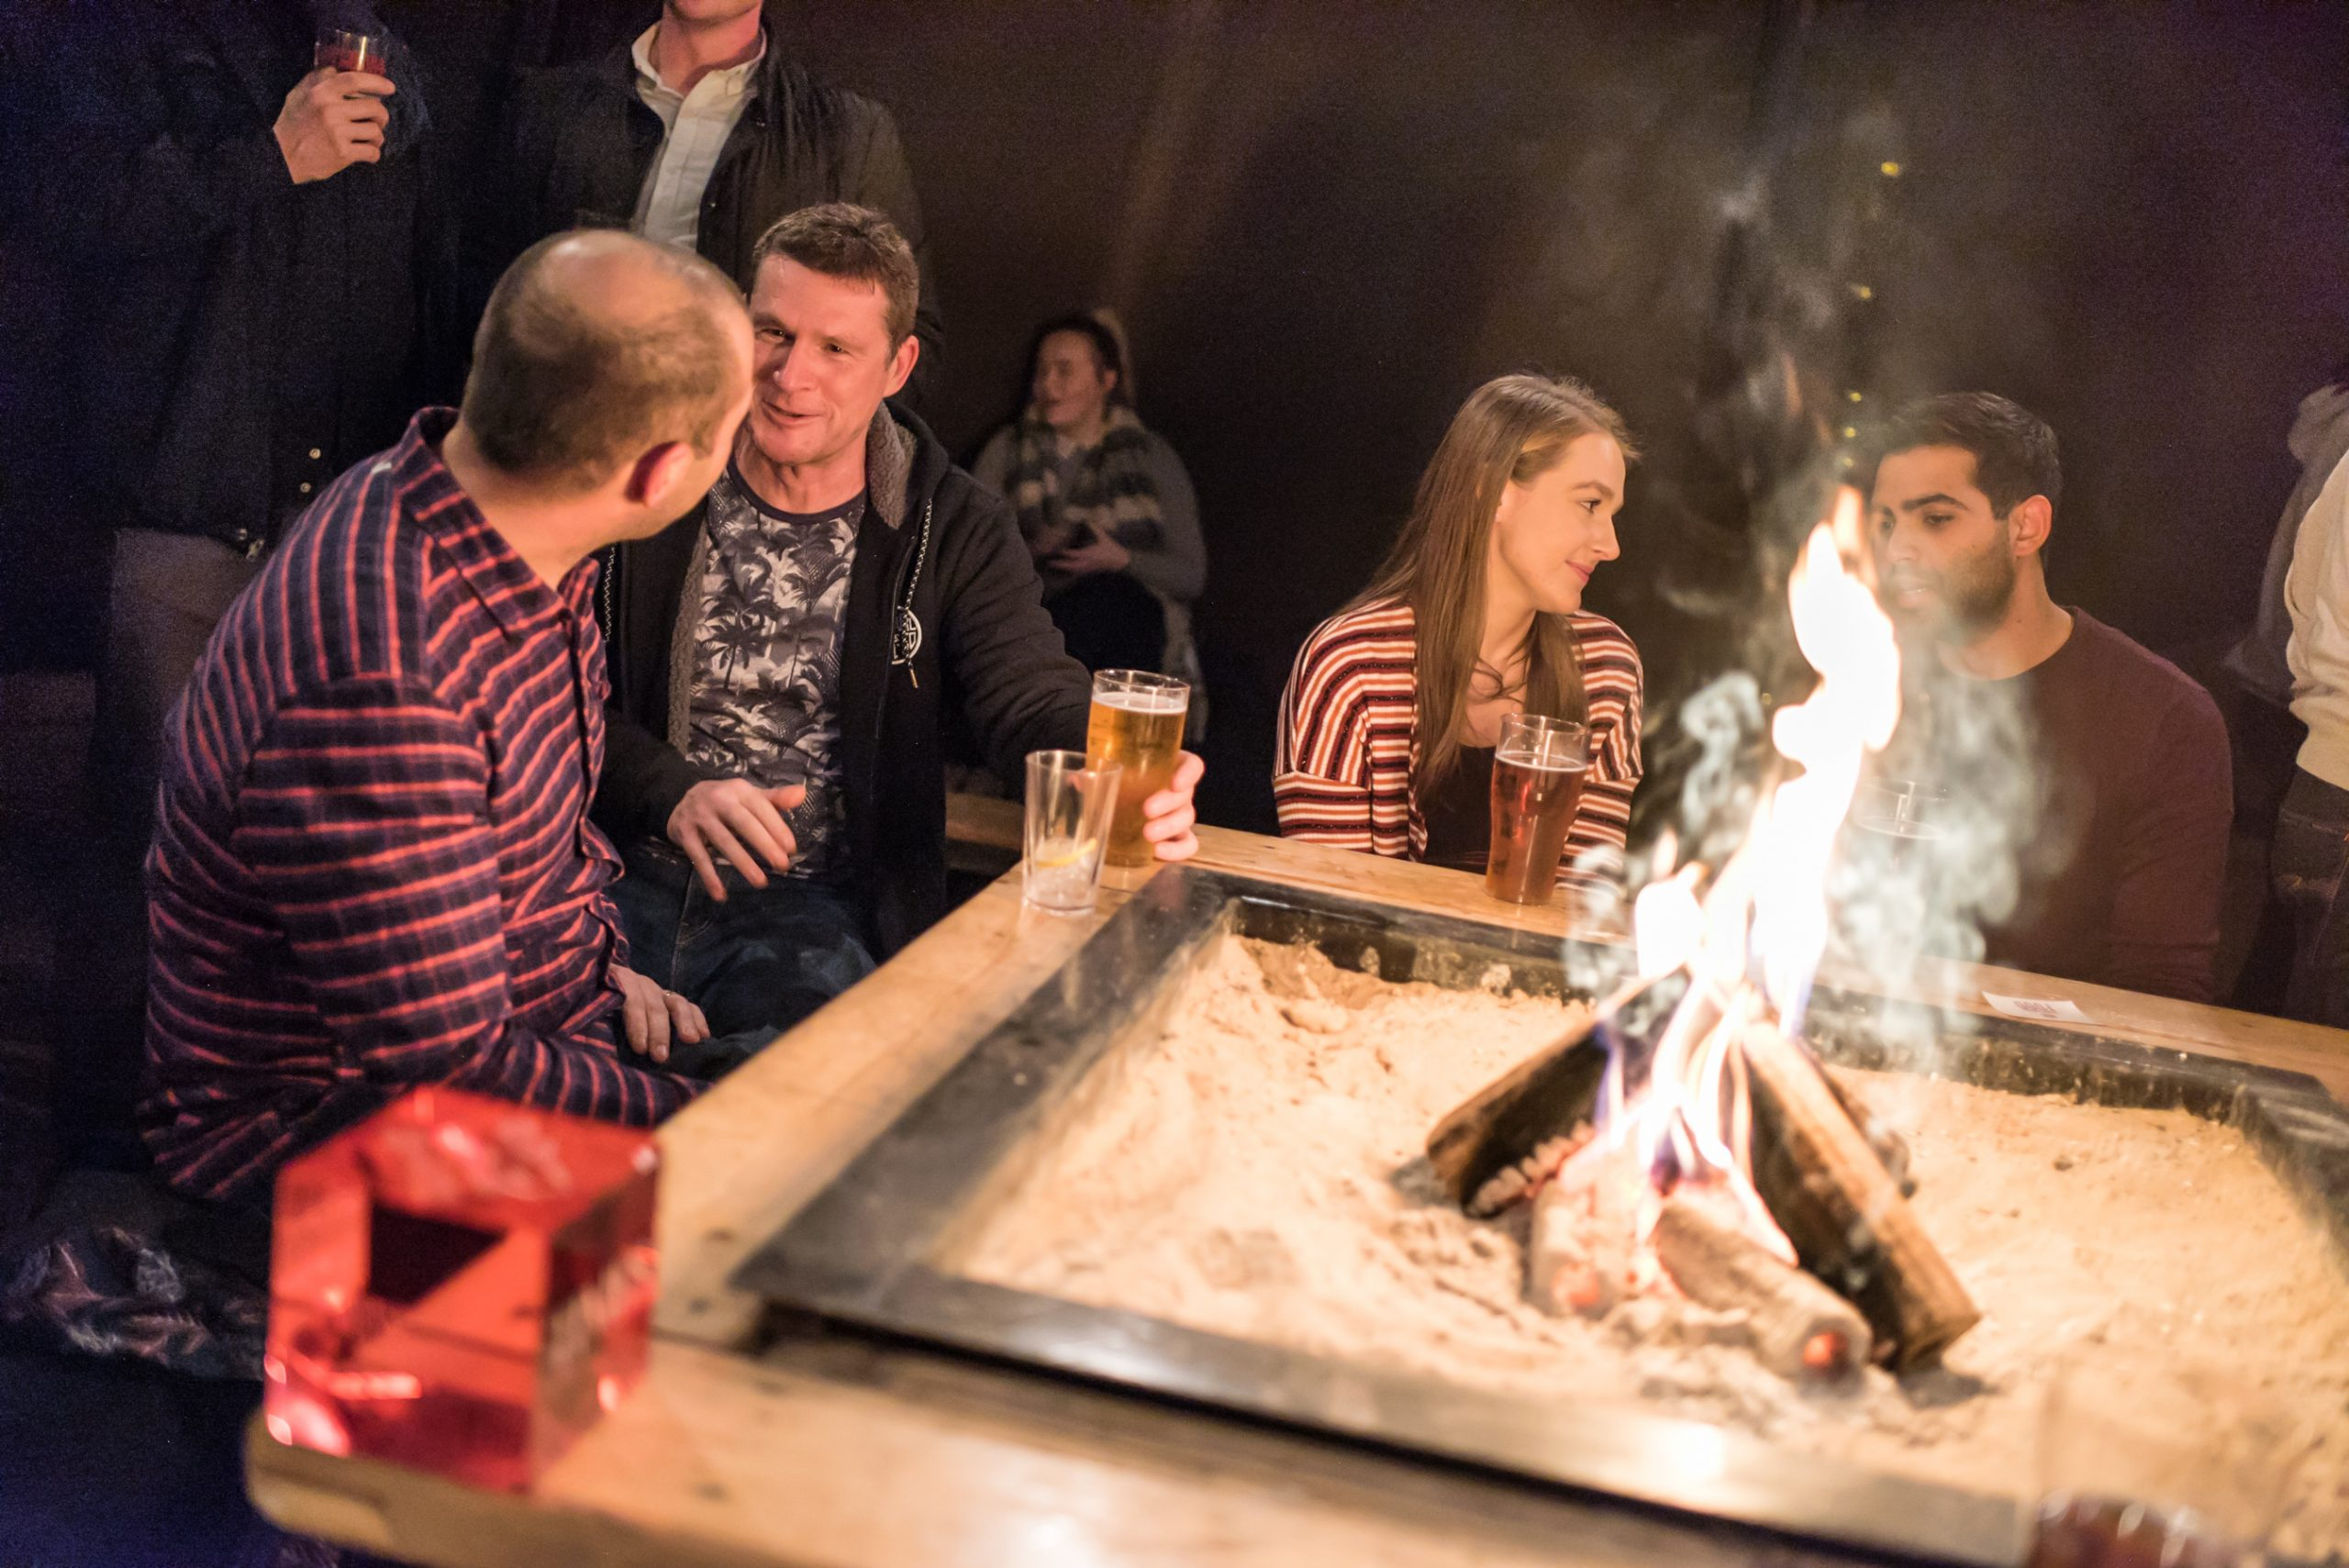 people enjoying a social gathering around a fire pit